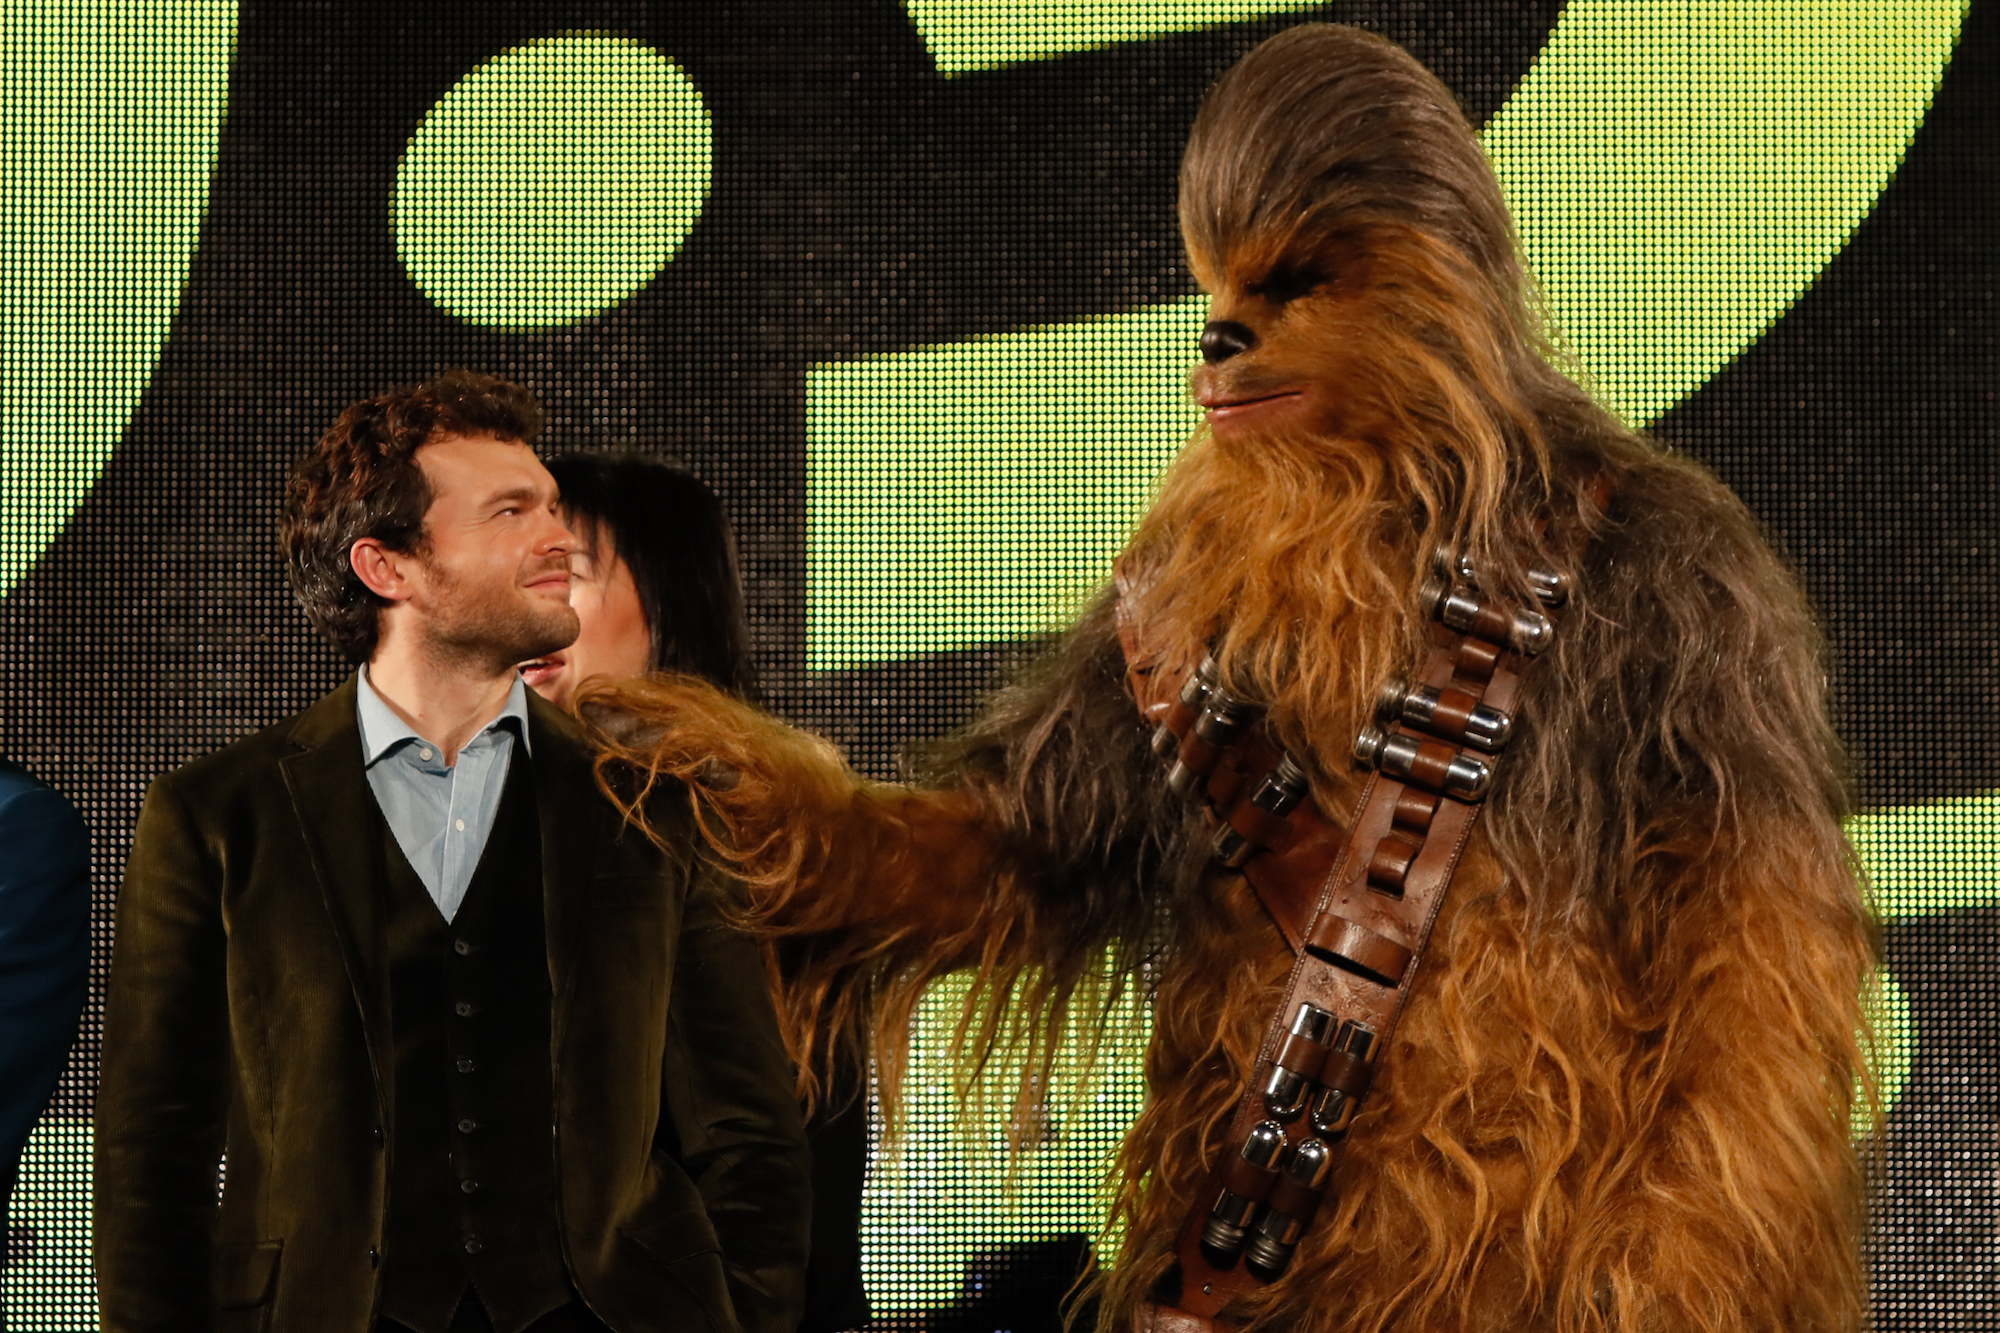 Alden Ehrenreich at the premiere for 'Solo: A Star Wars Story' on June 12, 2018 in Tokyo, Japan.